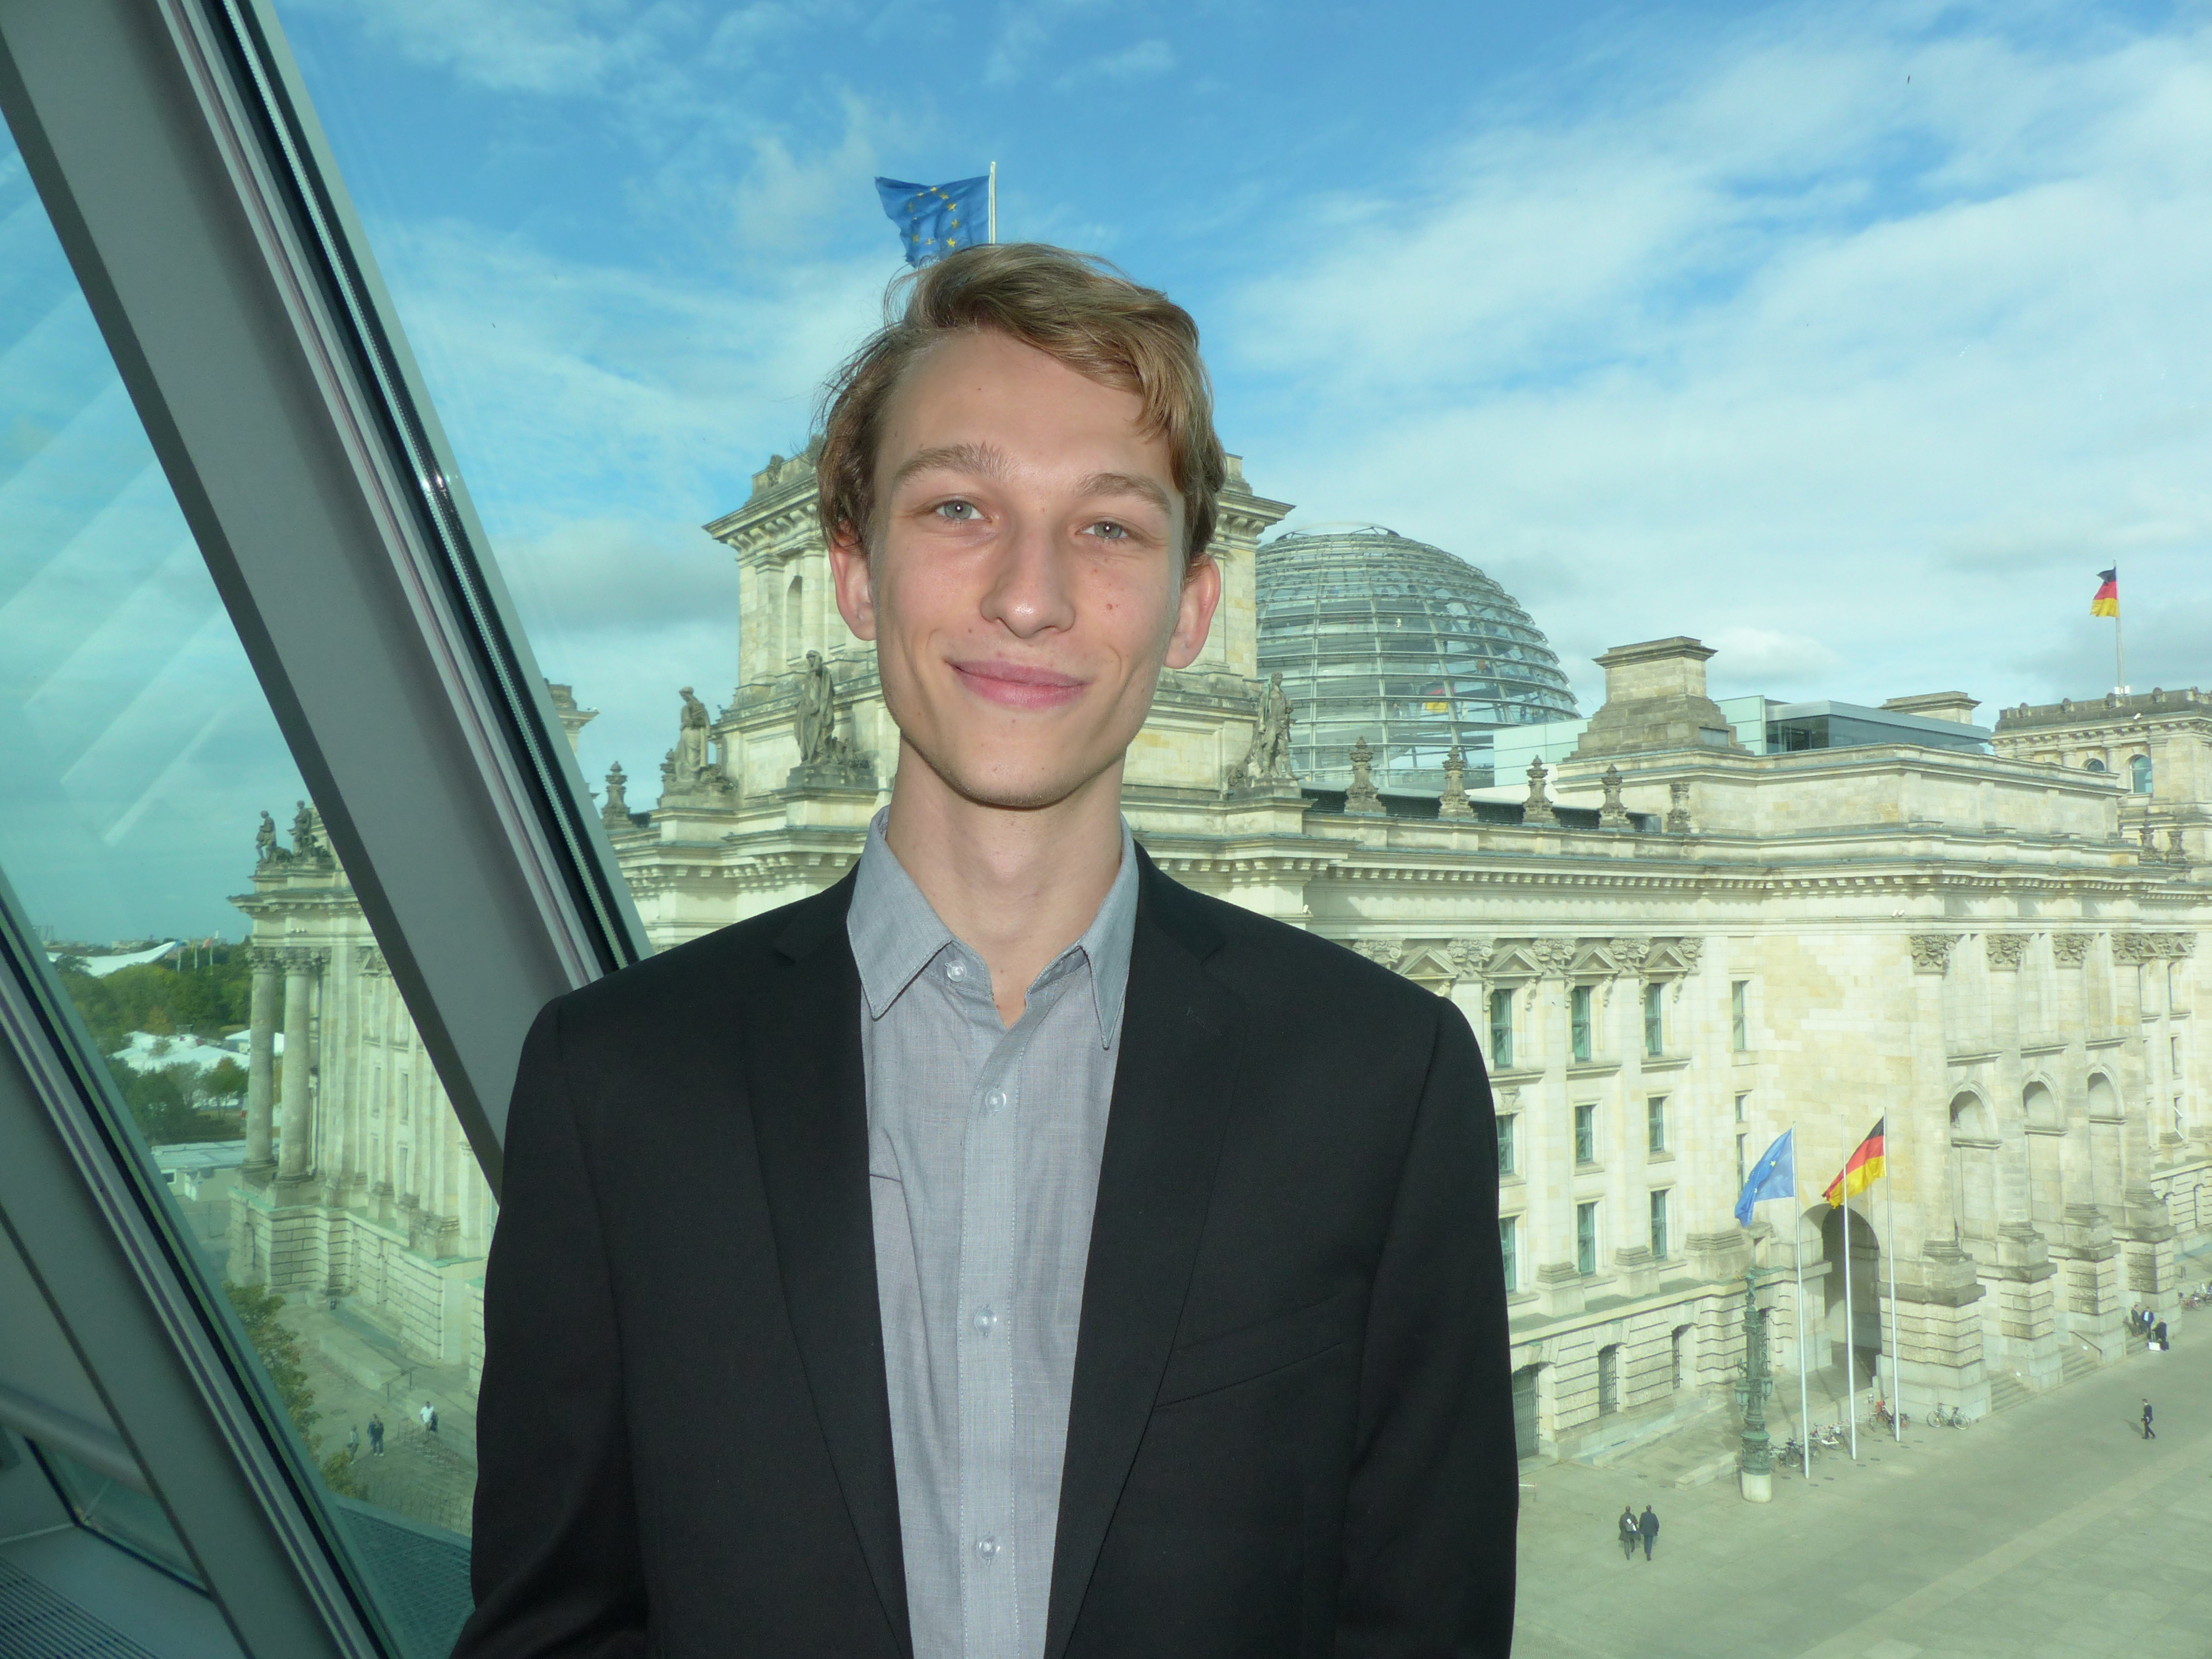 Student in front of the German Parliament